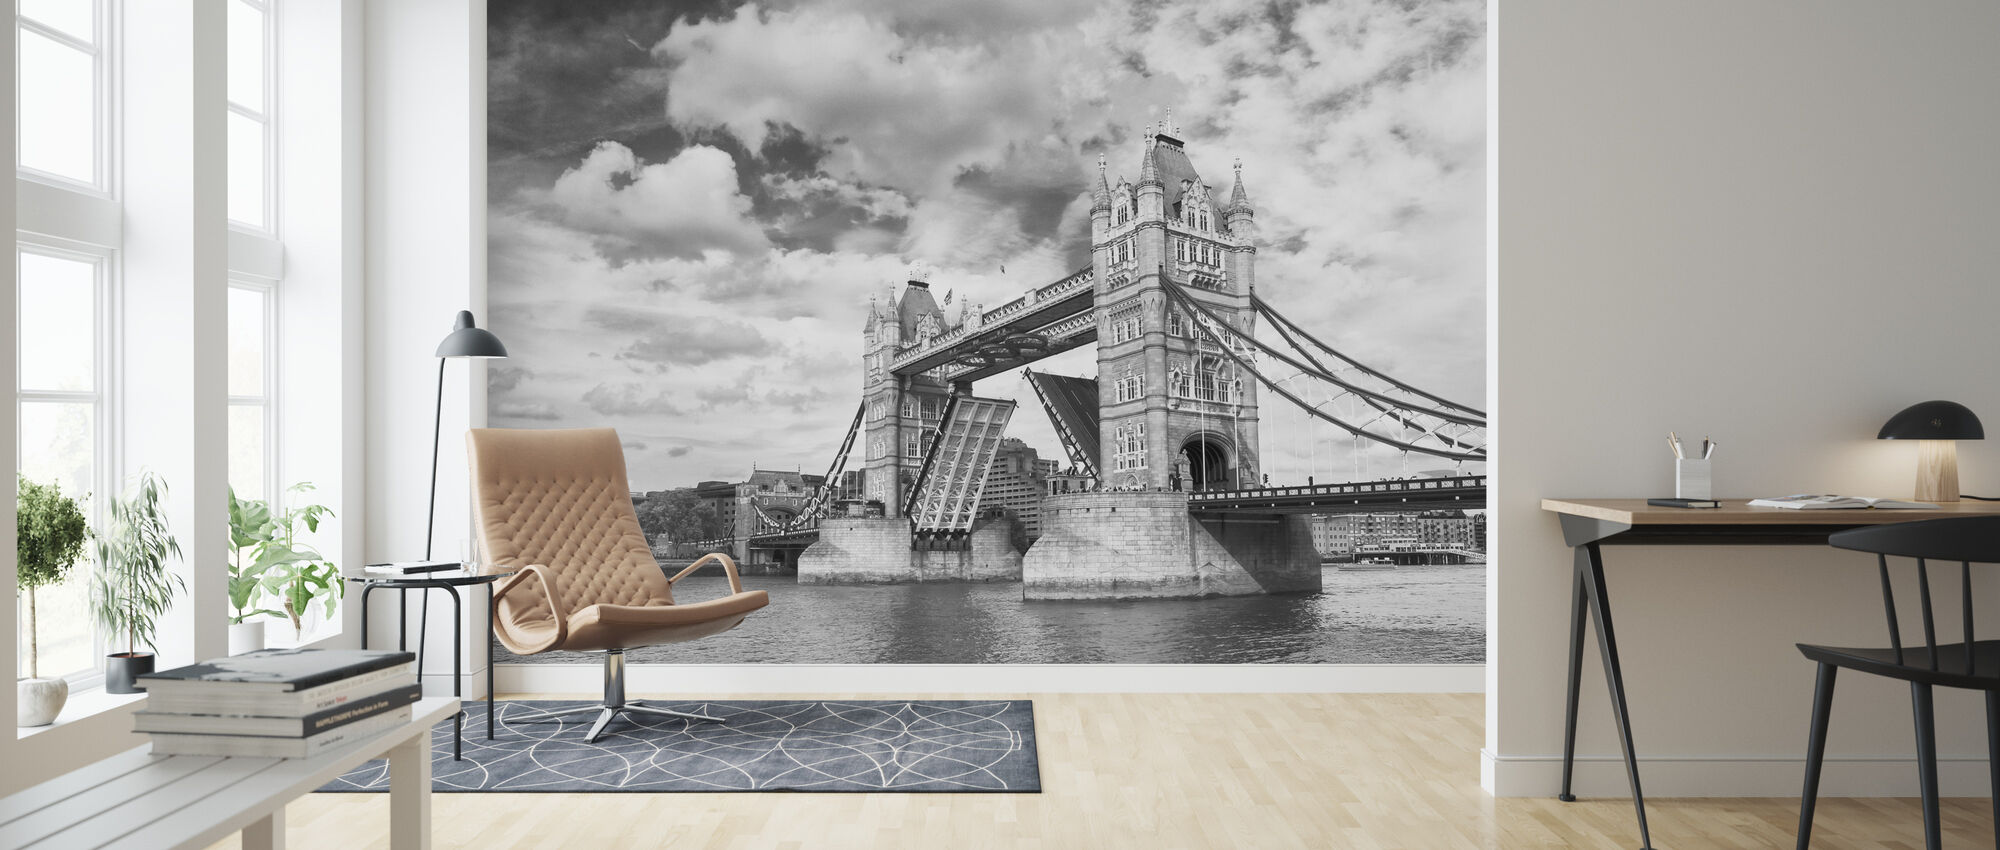 Tower Bridge Opening - Wallpaper - Living Room